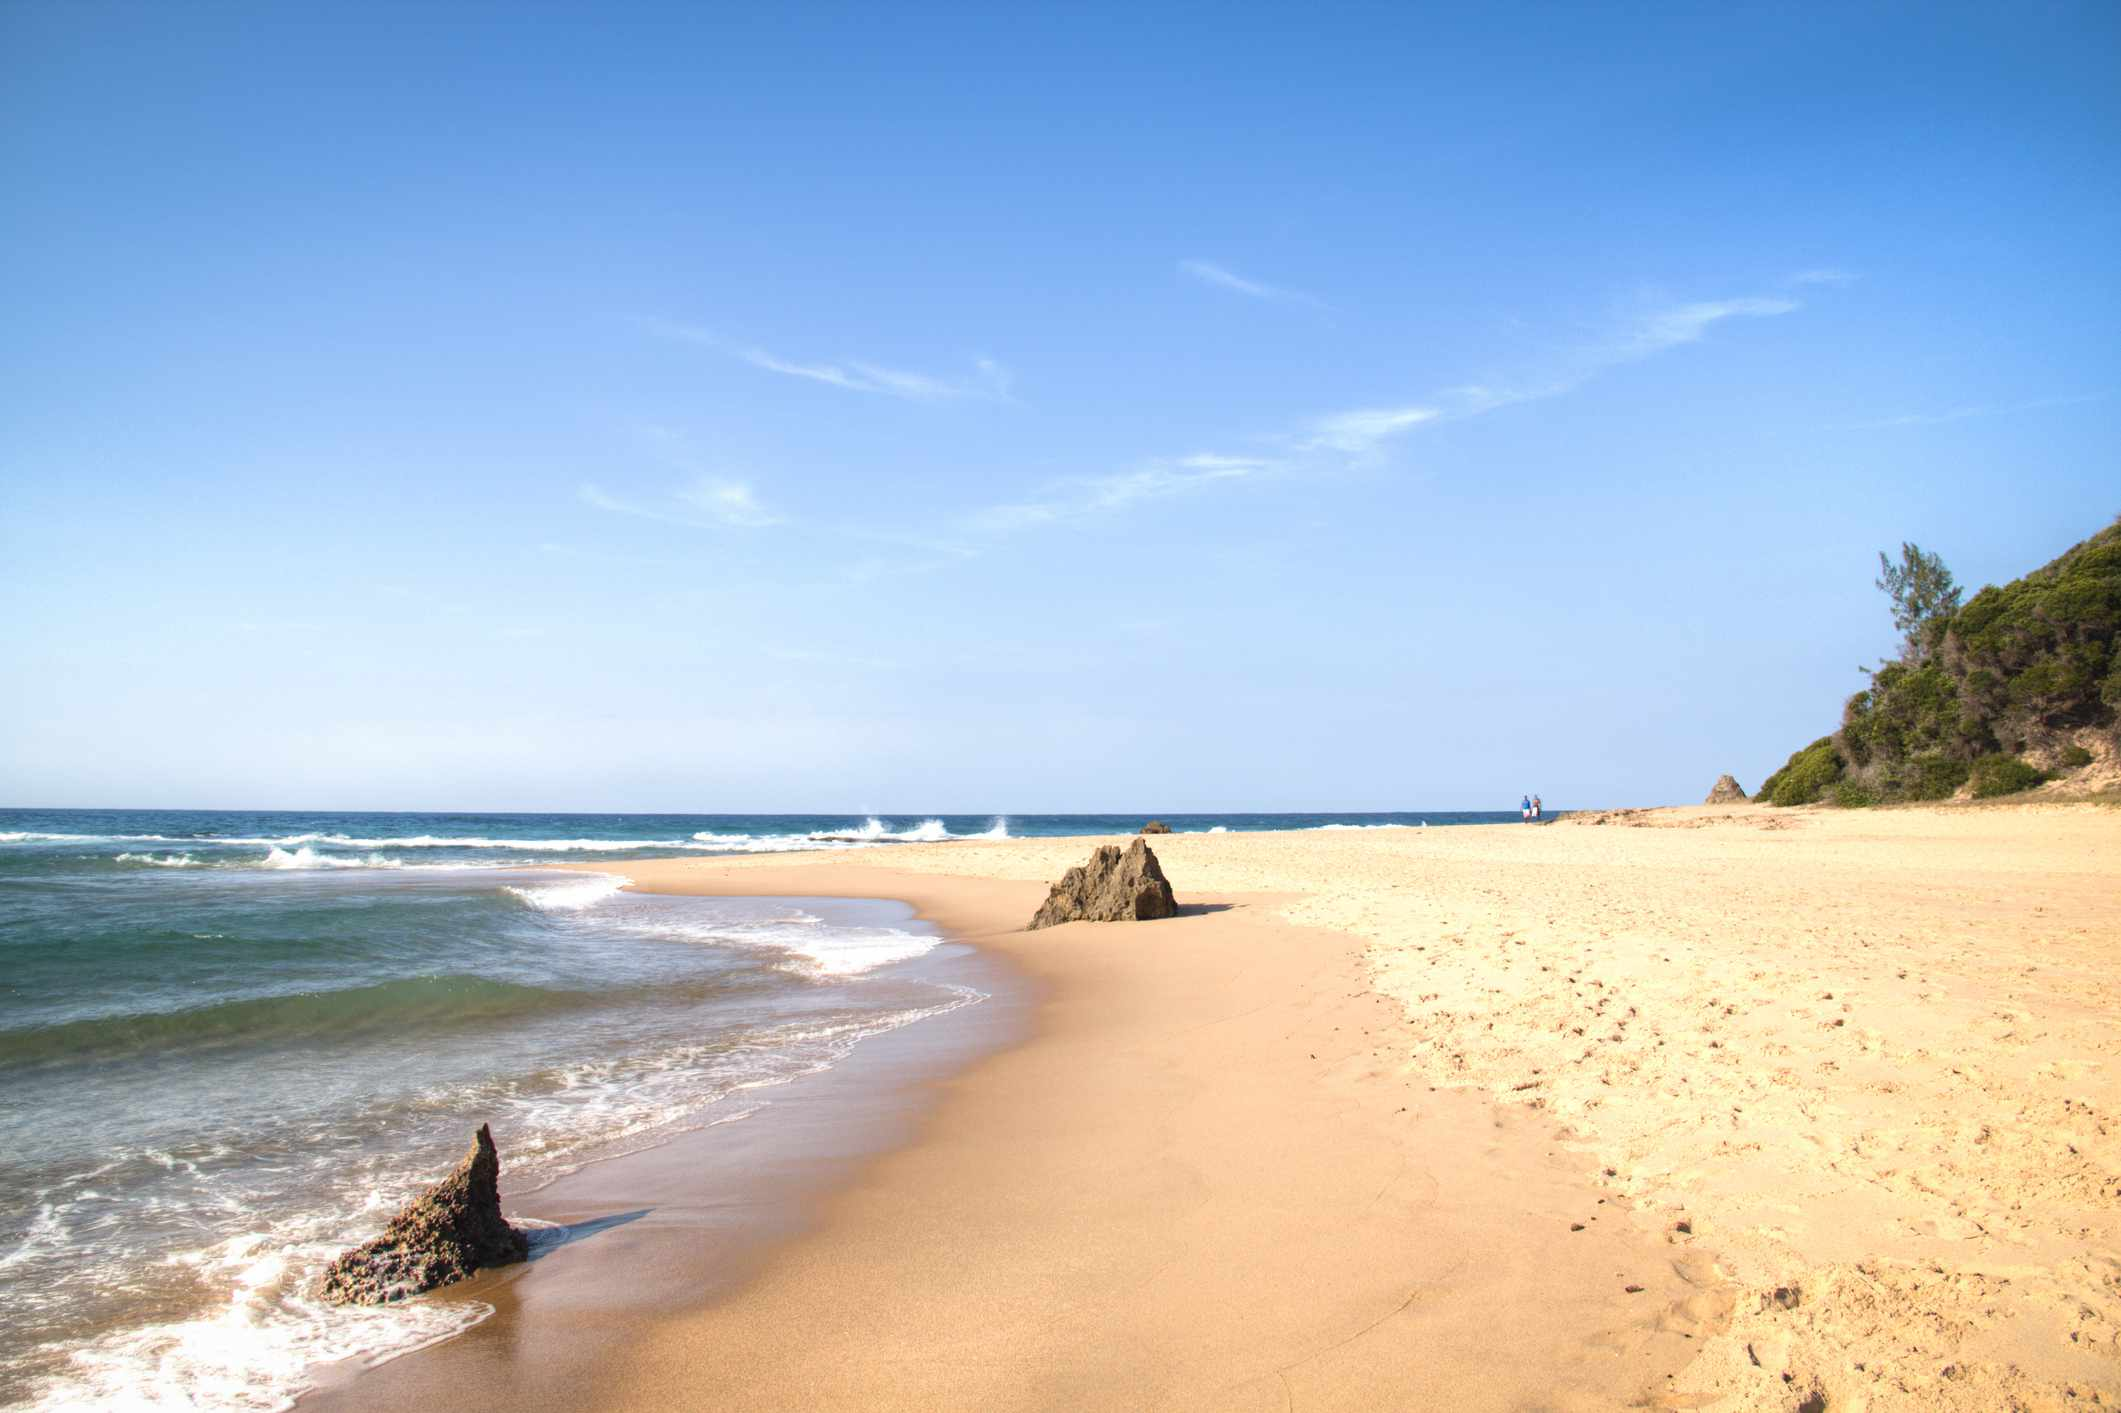 Empty beach in the town of Ponta Do Ouro in Mozambique